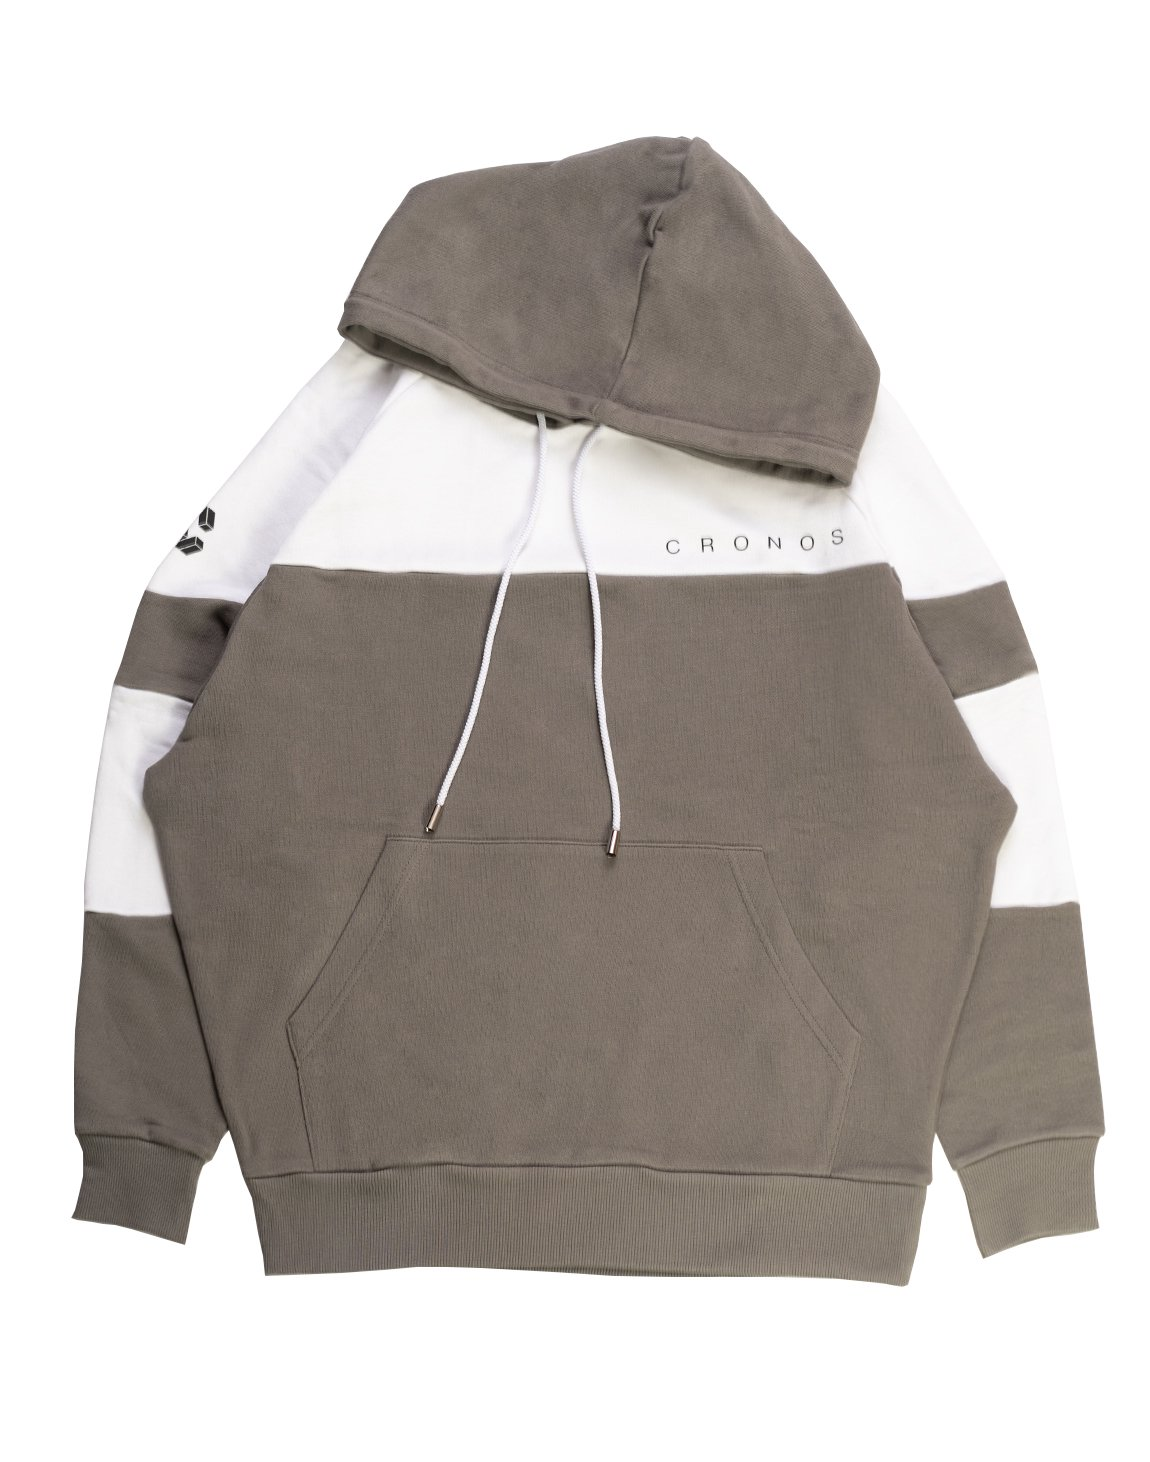 <img class='new_mark_img1' src='https://img.shop-pro.jp/img/new/icons1.gif' style='border:none;display:inline;margin:0px;padding:0px;width:auto;' />CRONOS NEW BICOLOR HOODY【GRAY×WHITE】